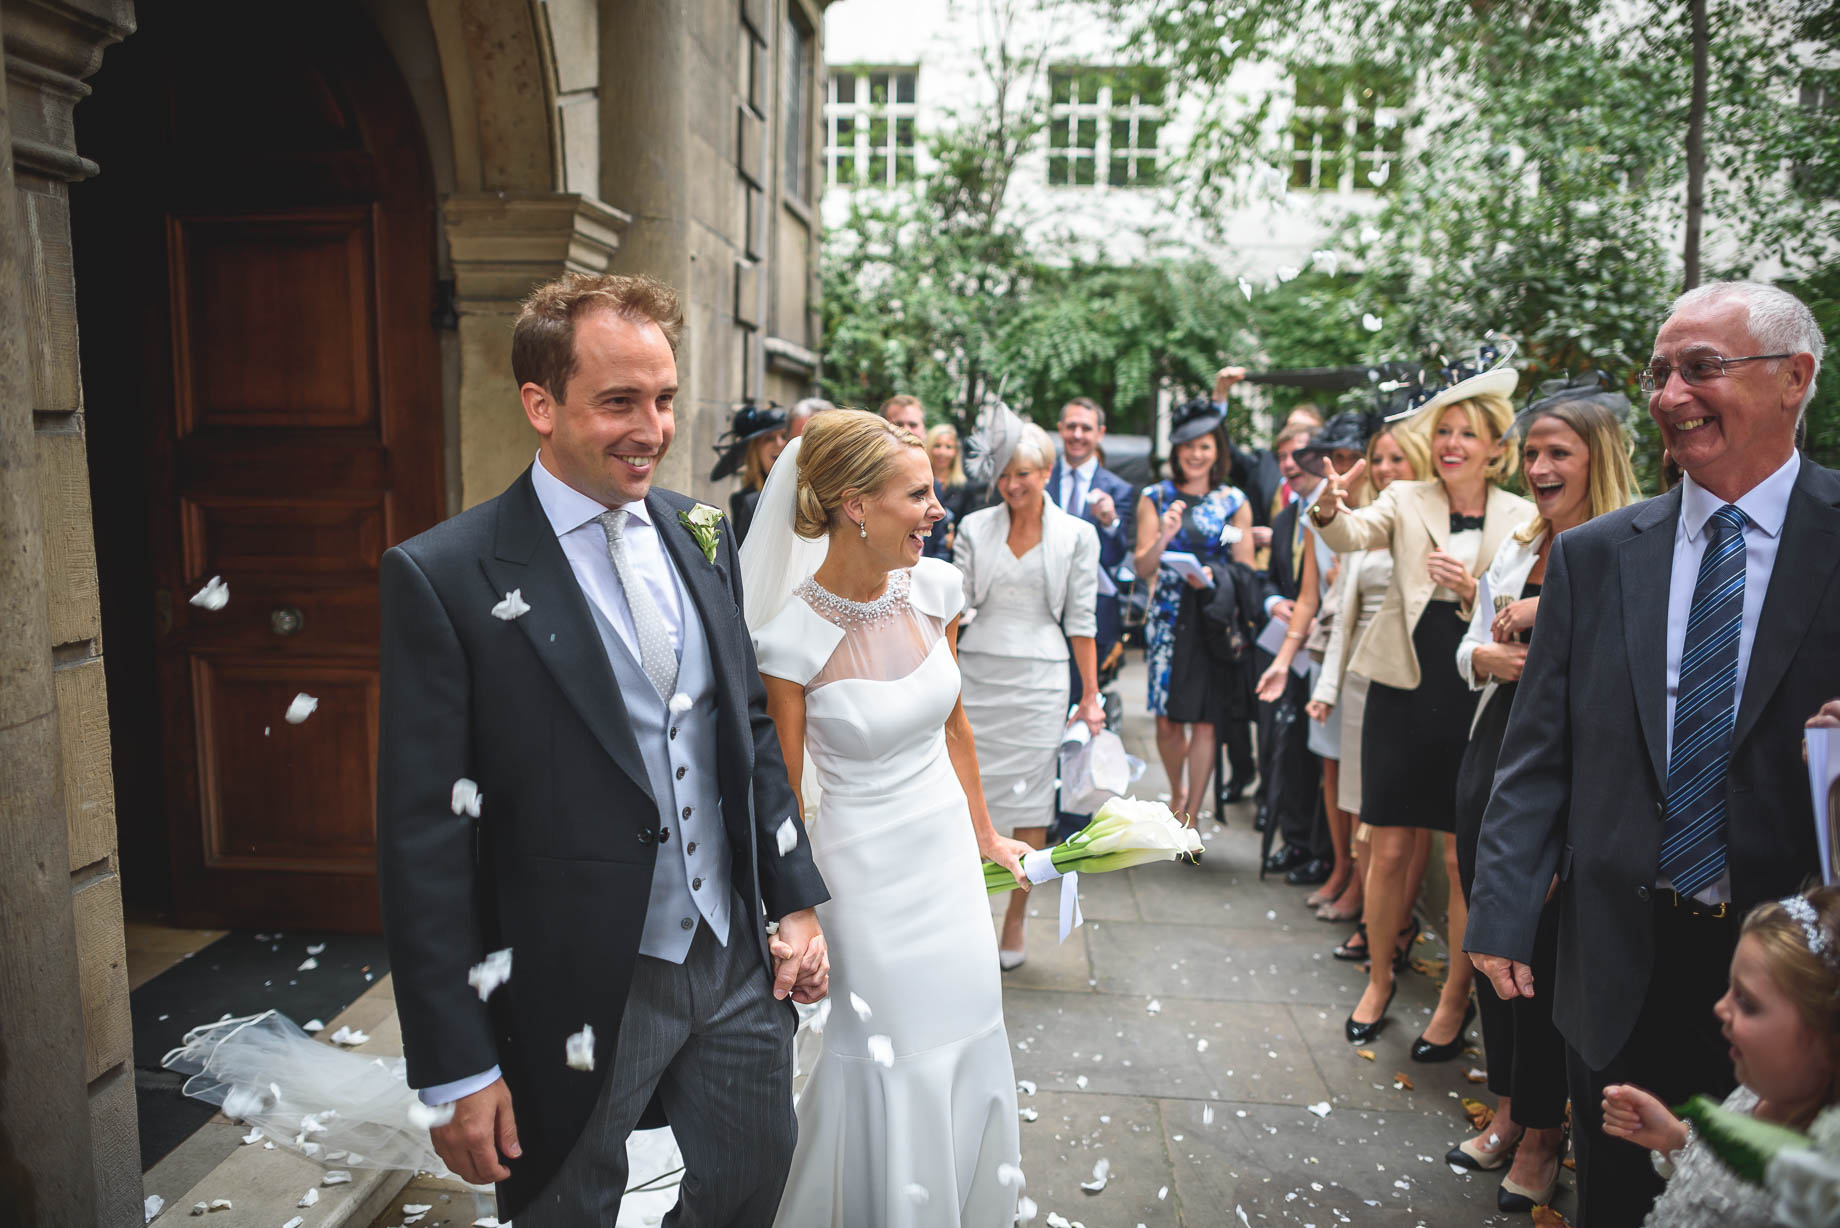 Shoreditch wedding photography - Guy Collier - Kat and Henry (85 of 200)